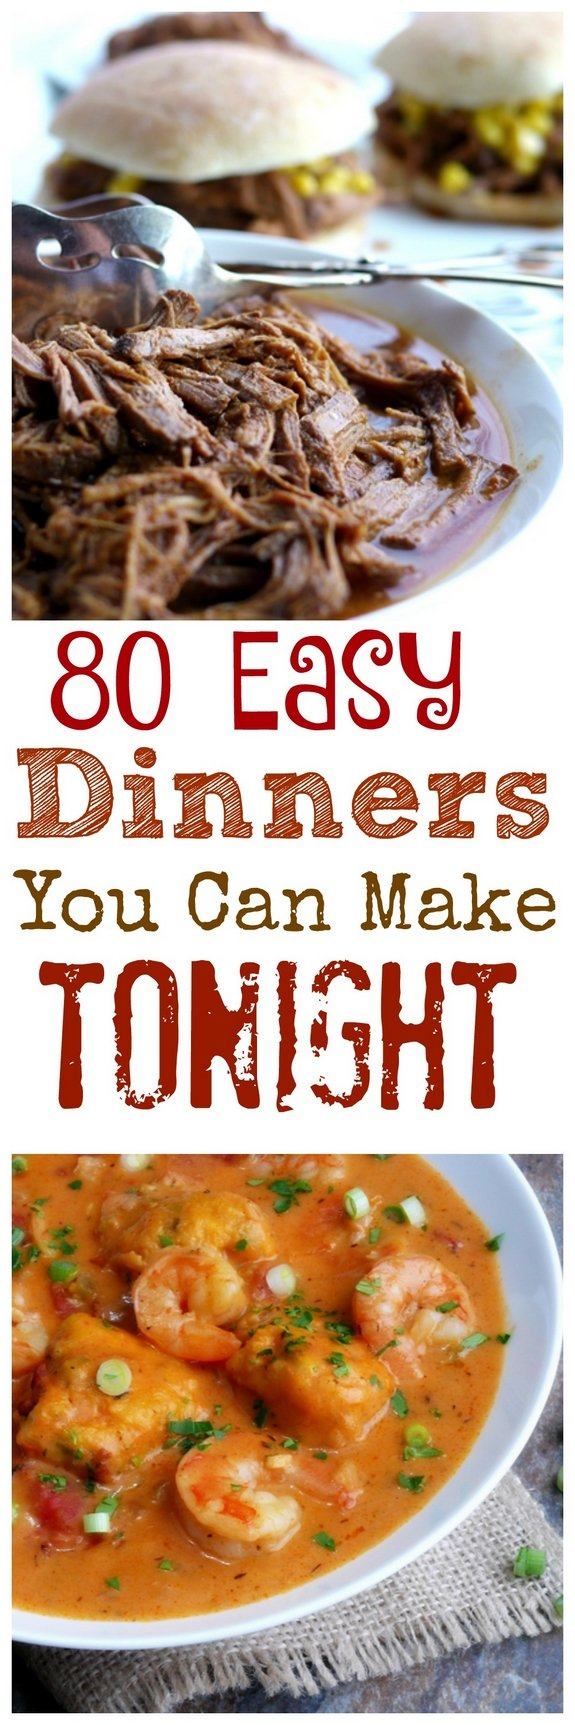 80 Easy Dinners You Can Make Tonight from NoblePig.com.